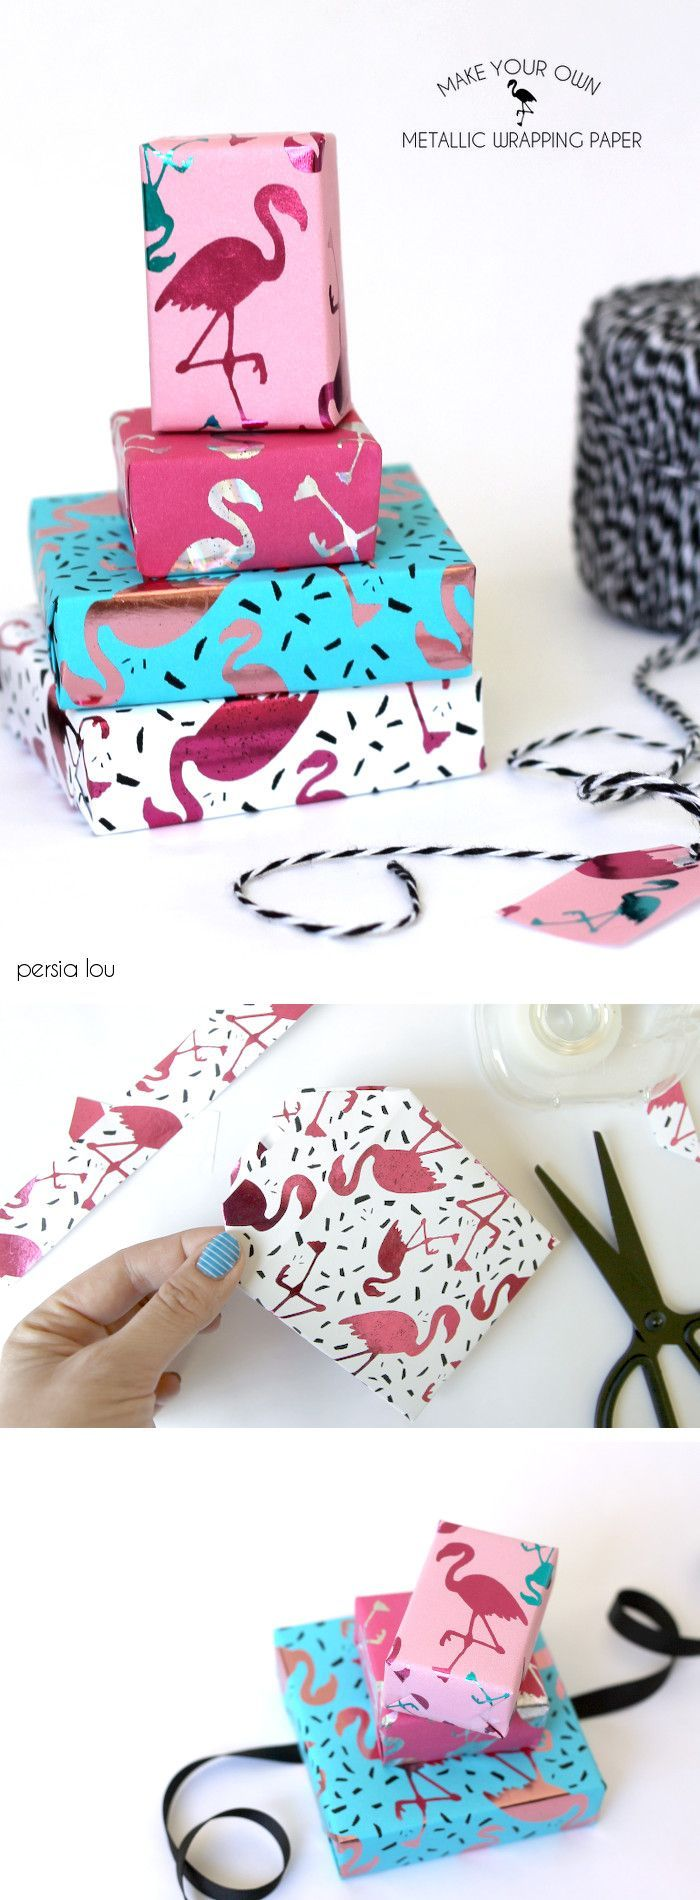 Make your own metallic flamingo wrapping paper! Free downloads. #HSMinc #ad